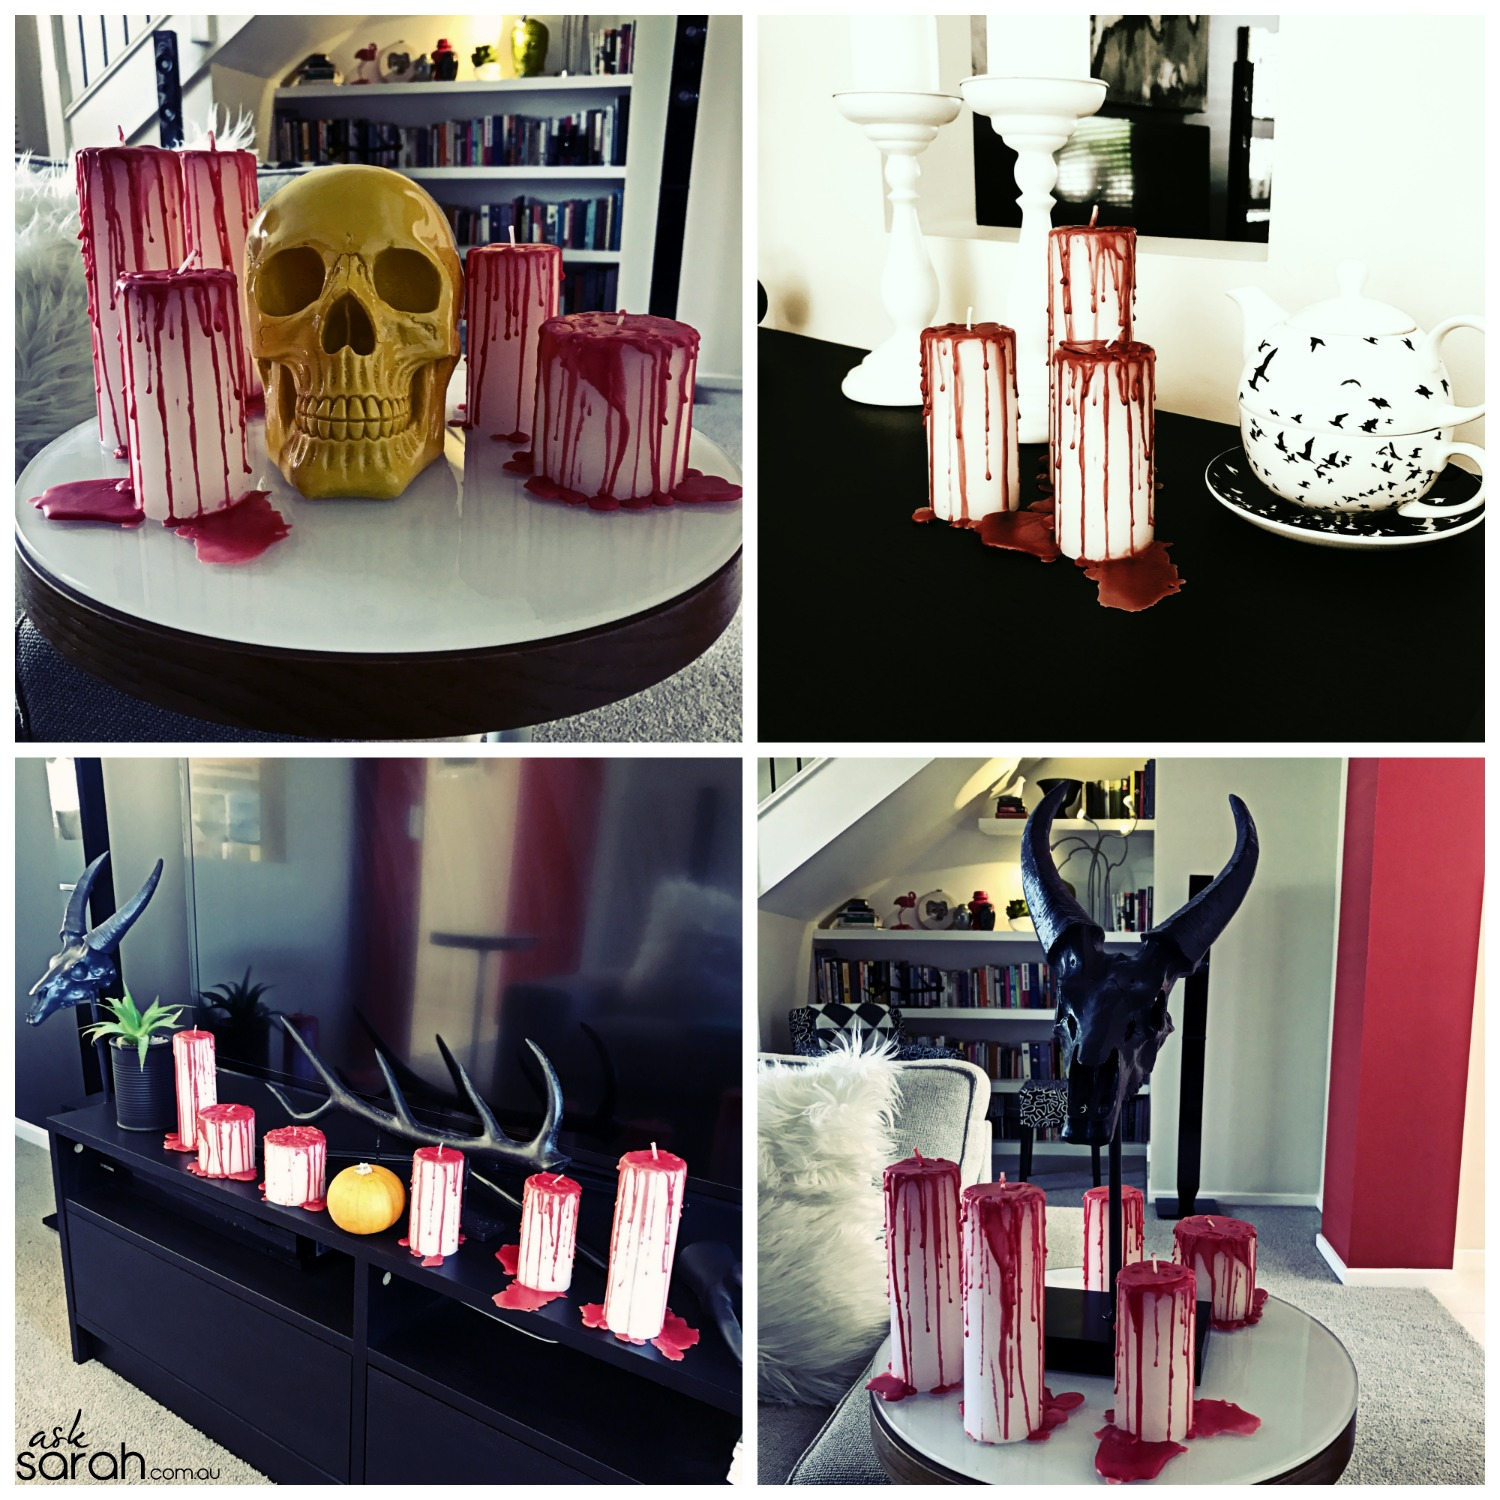 DIY: Gory Bleeding Candles {Last Minute Halloween Décor or Hostess Gift}